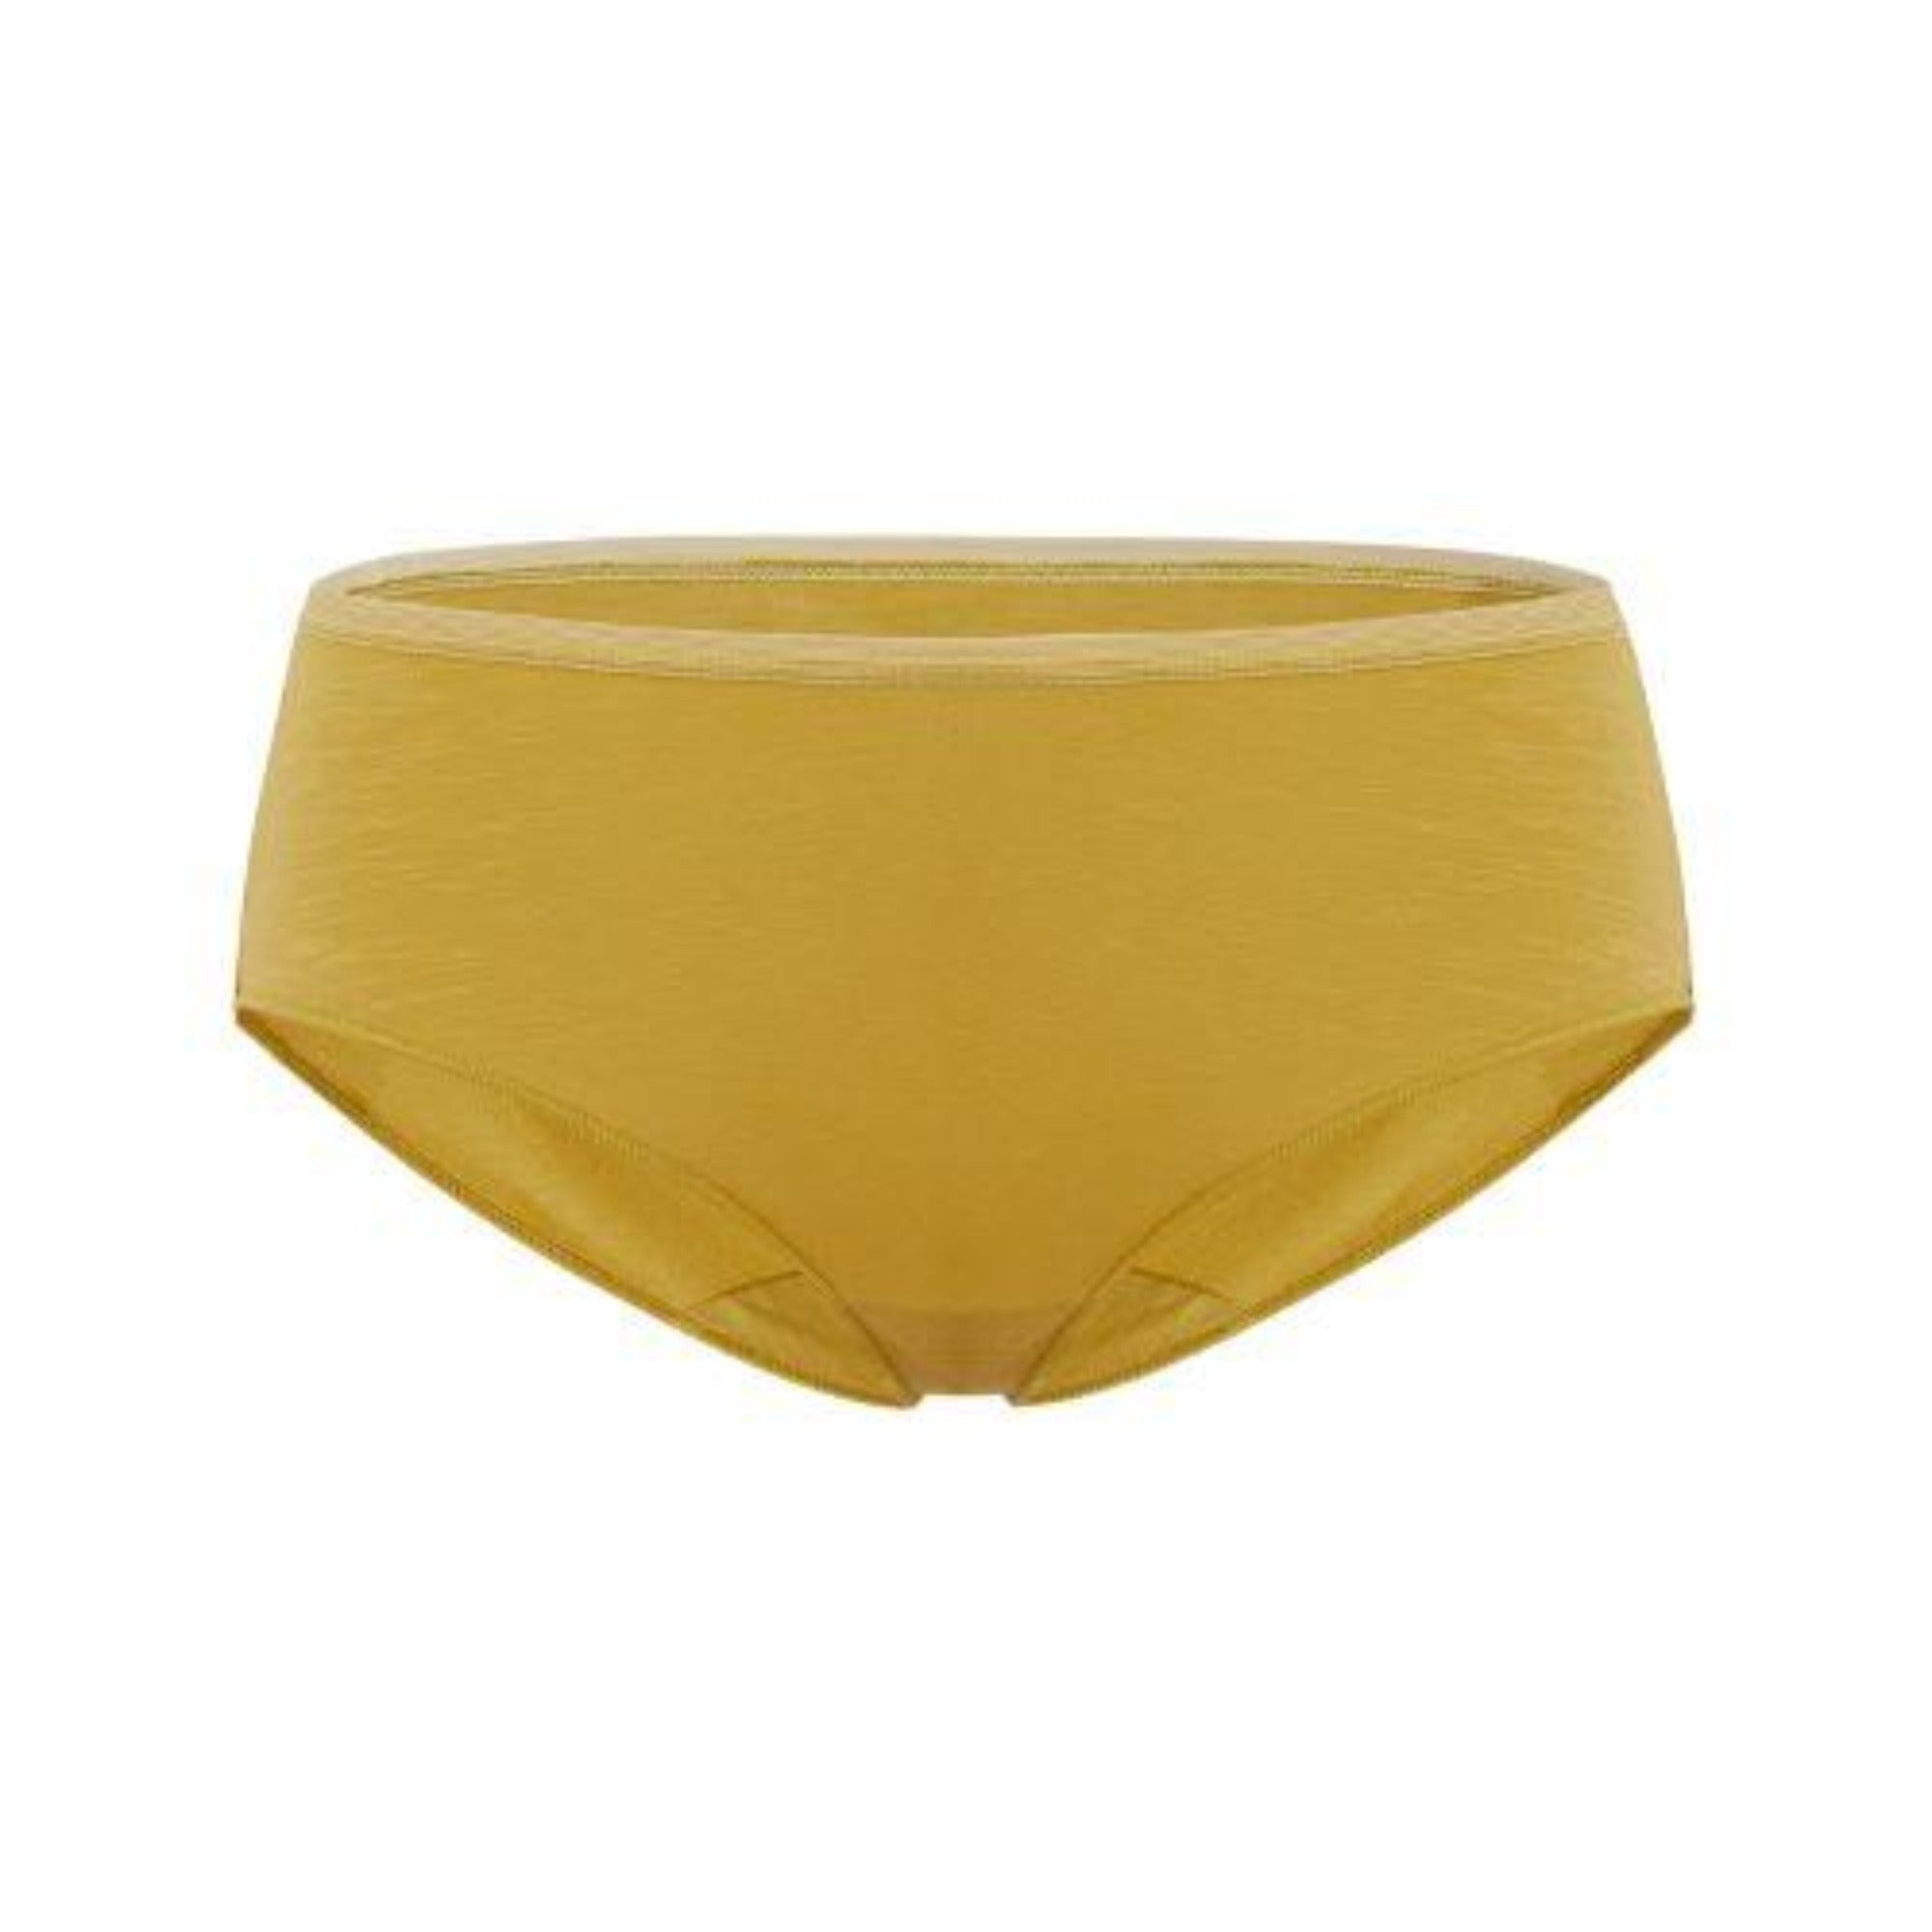 NEIWAI's Pure Comfort Turkish Cotton High Waist Brief in Warm Olive..